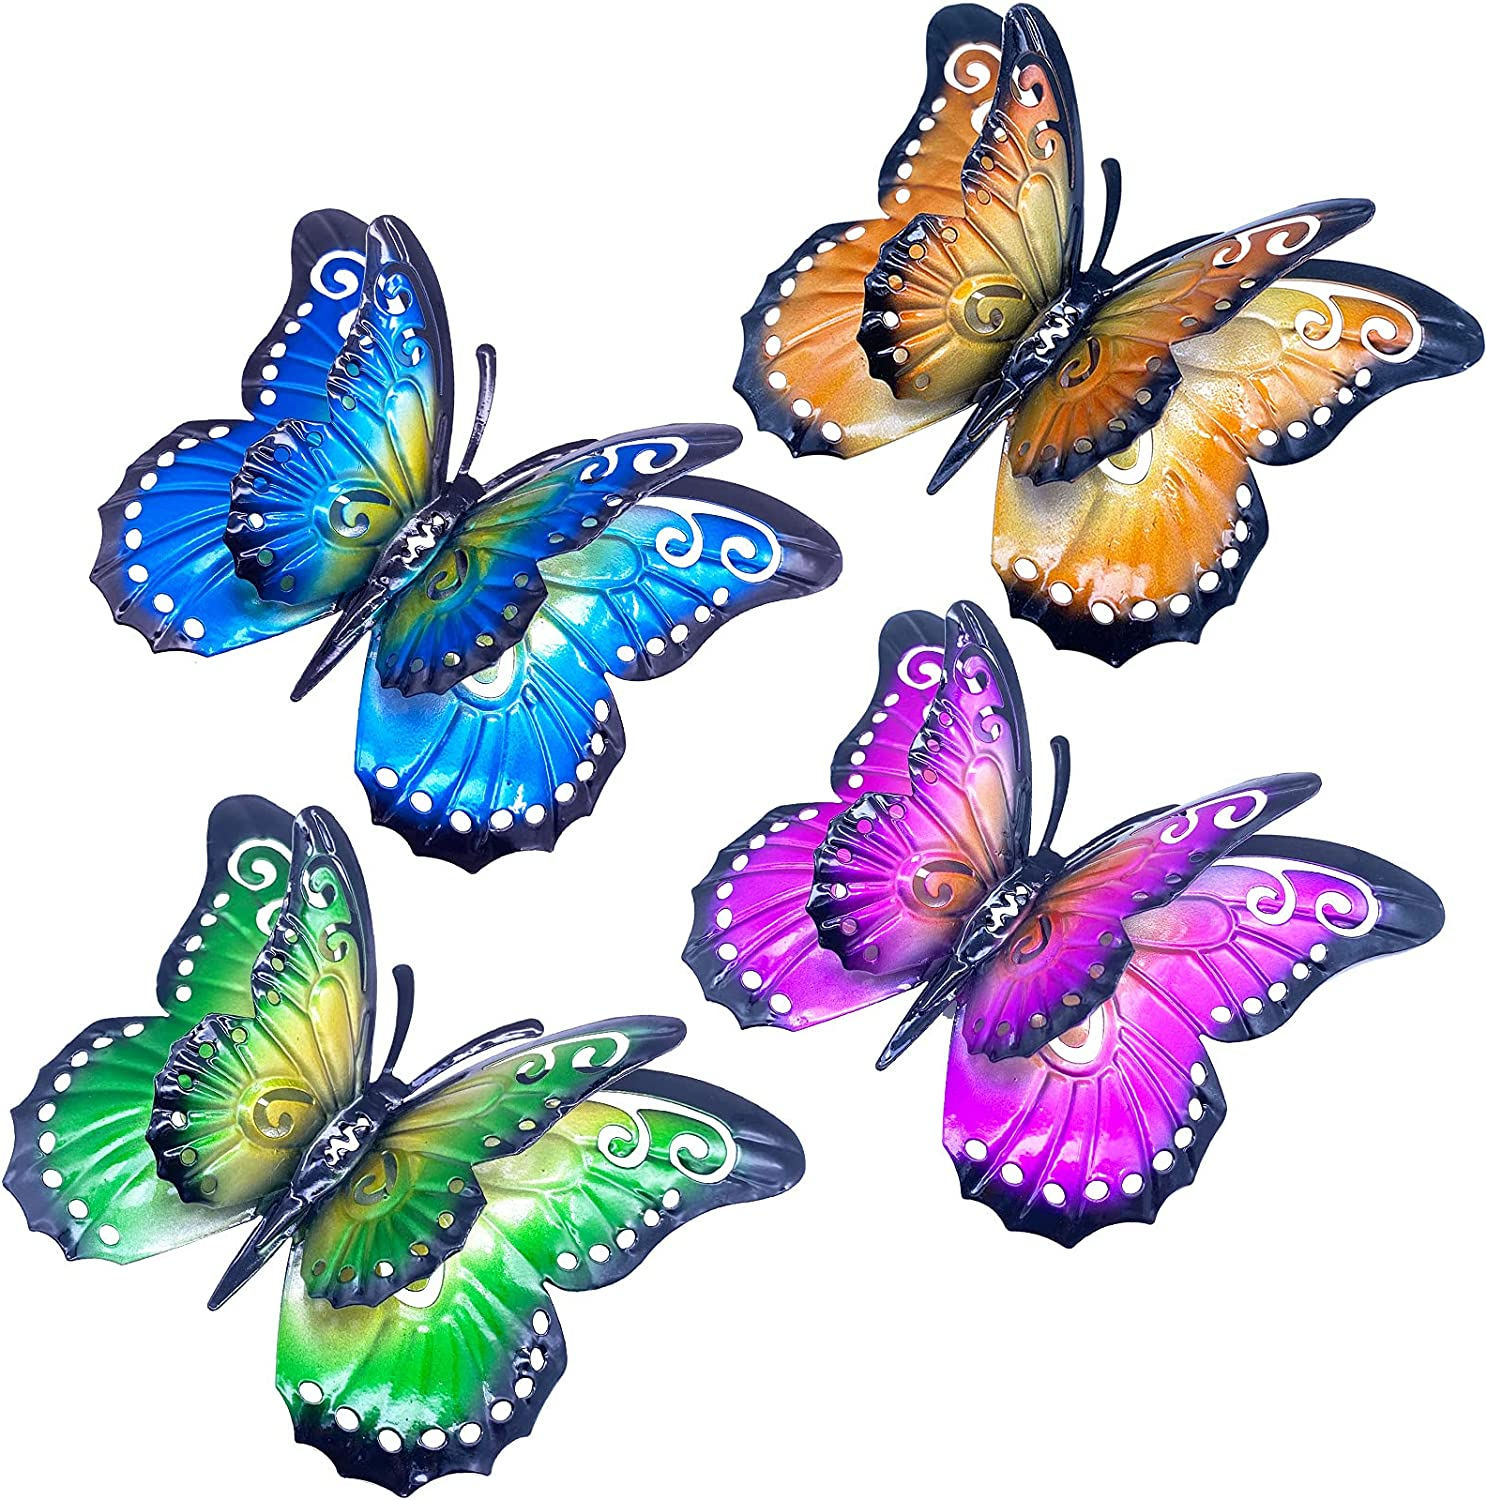 Daogtc Metal Butterfly Wall Decor, 6.5in 3D Metal Butterfly Art Hanging Decoration for Outdoor or Indoor, Decorate Garden,Yard,Patio,Fence ,Living Room, Bedroom (4 Pack)